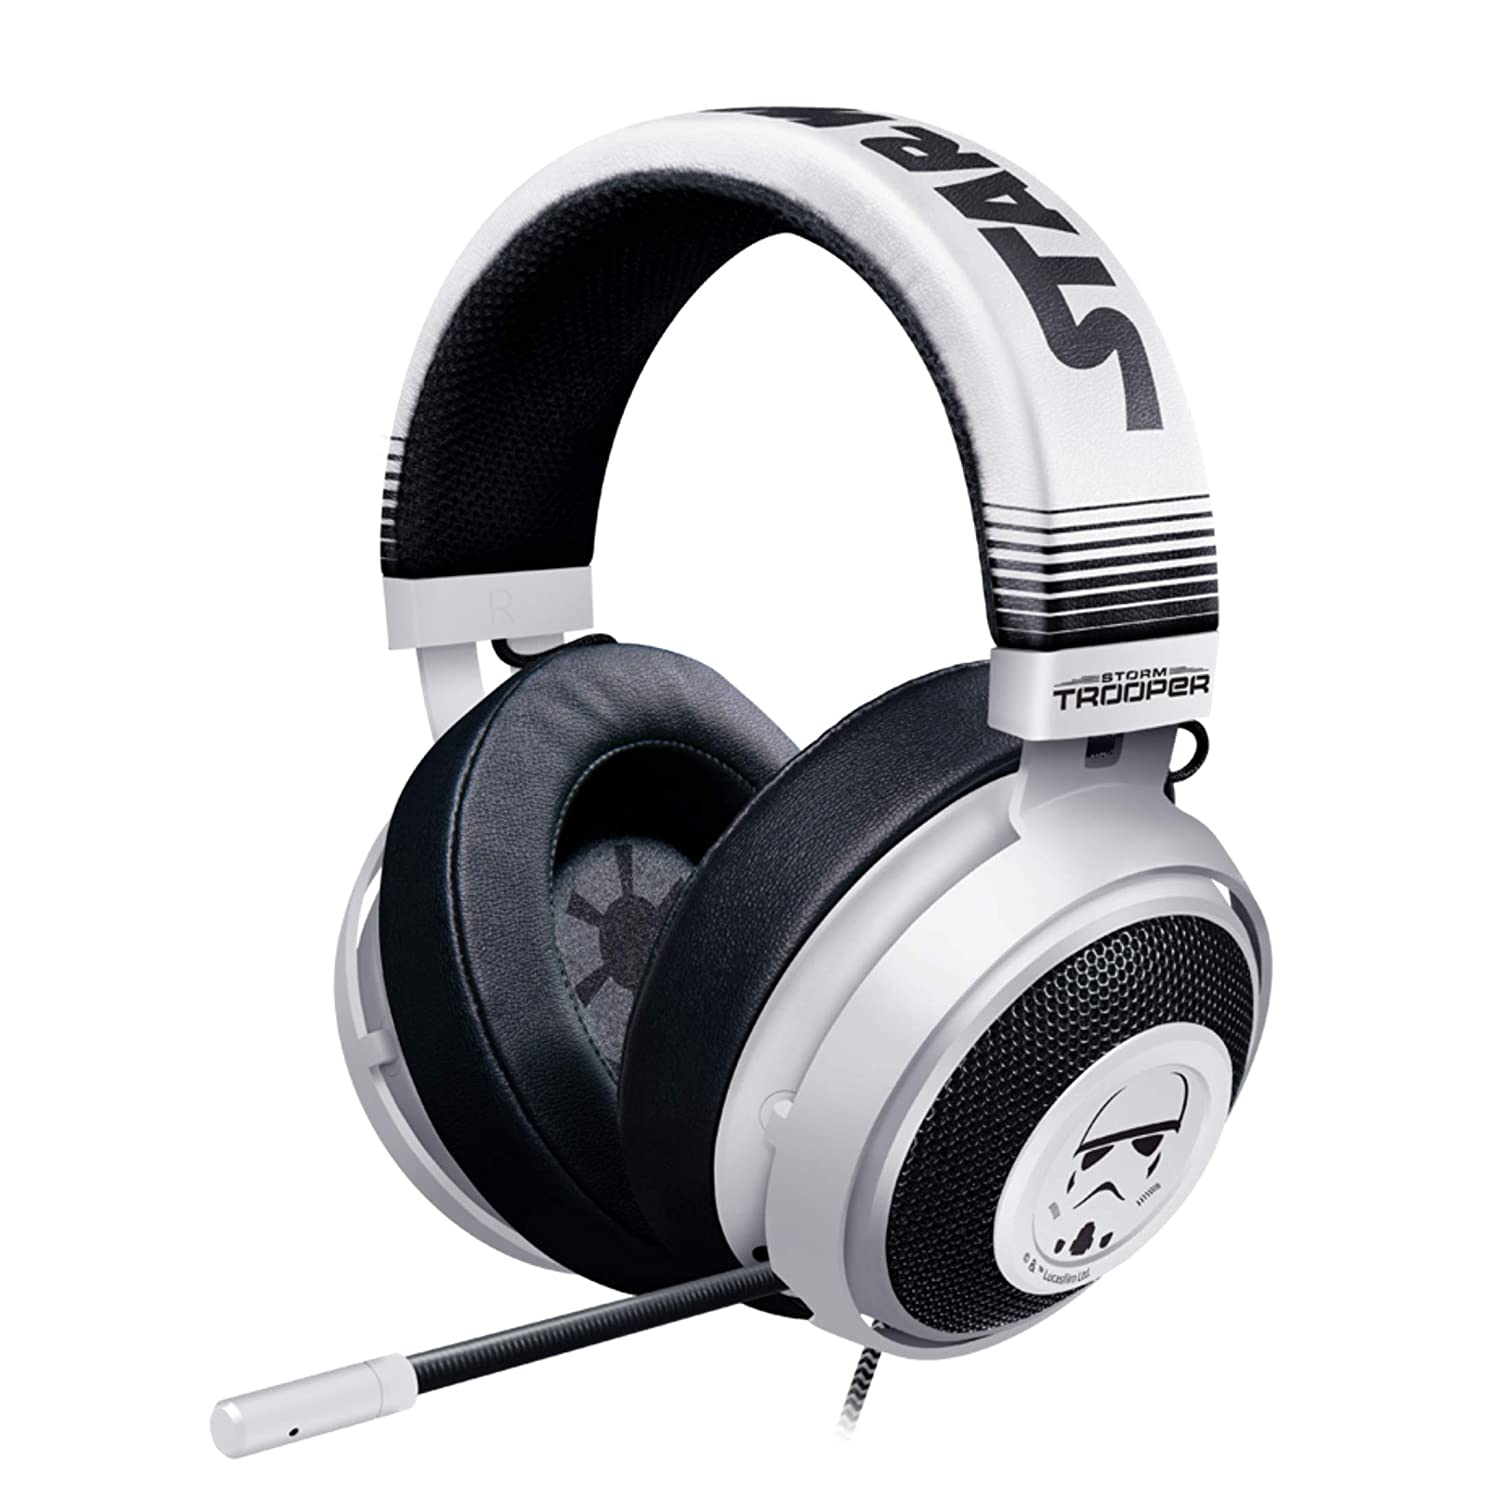 Razer Kraken Gaming Headset: Lightweight Aluminum Frame - Retractable Cardioid Mic - for PC, PS4, Nintendo Switch - 3.5 mm Headphone Jack - Stormtrooper Limited Edition